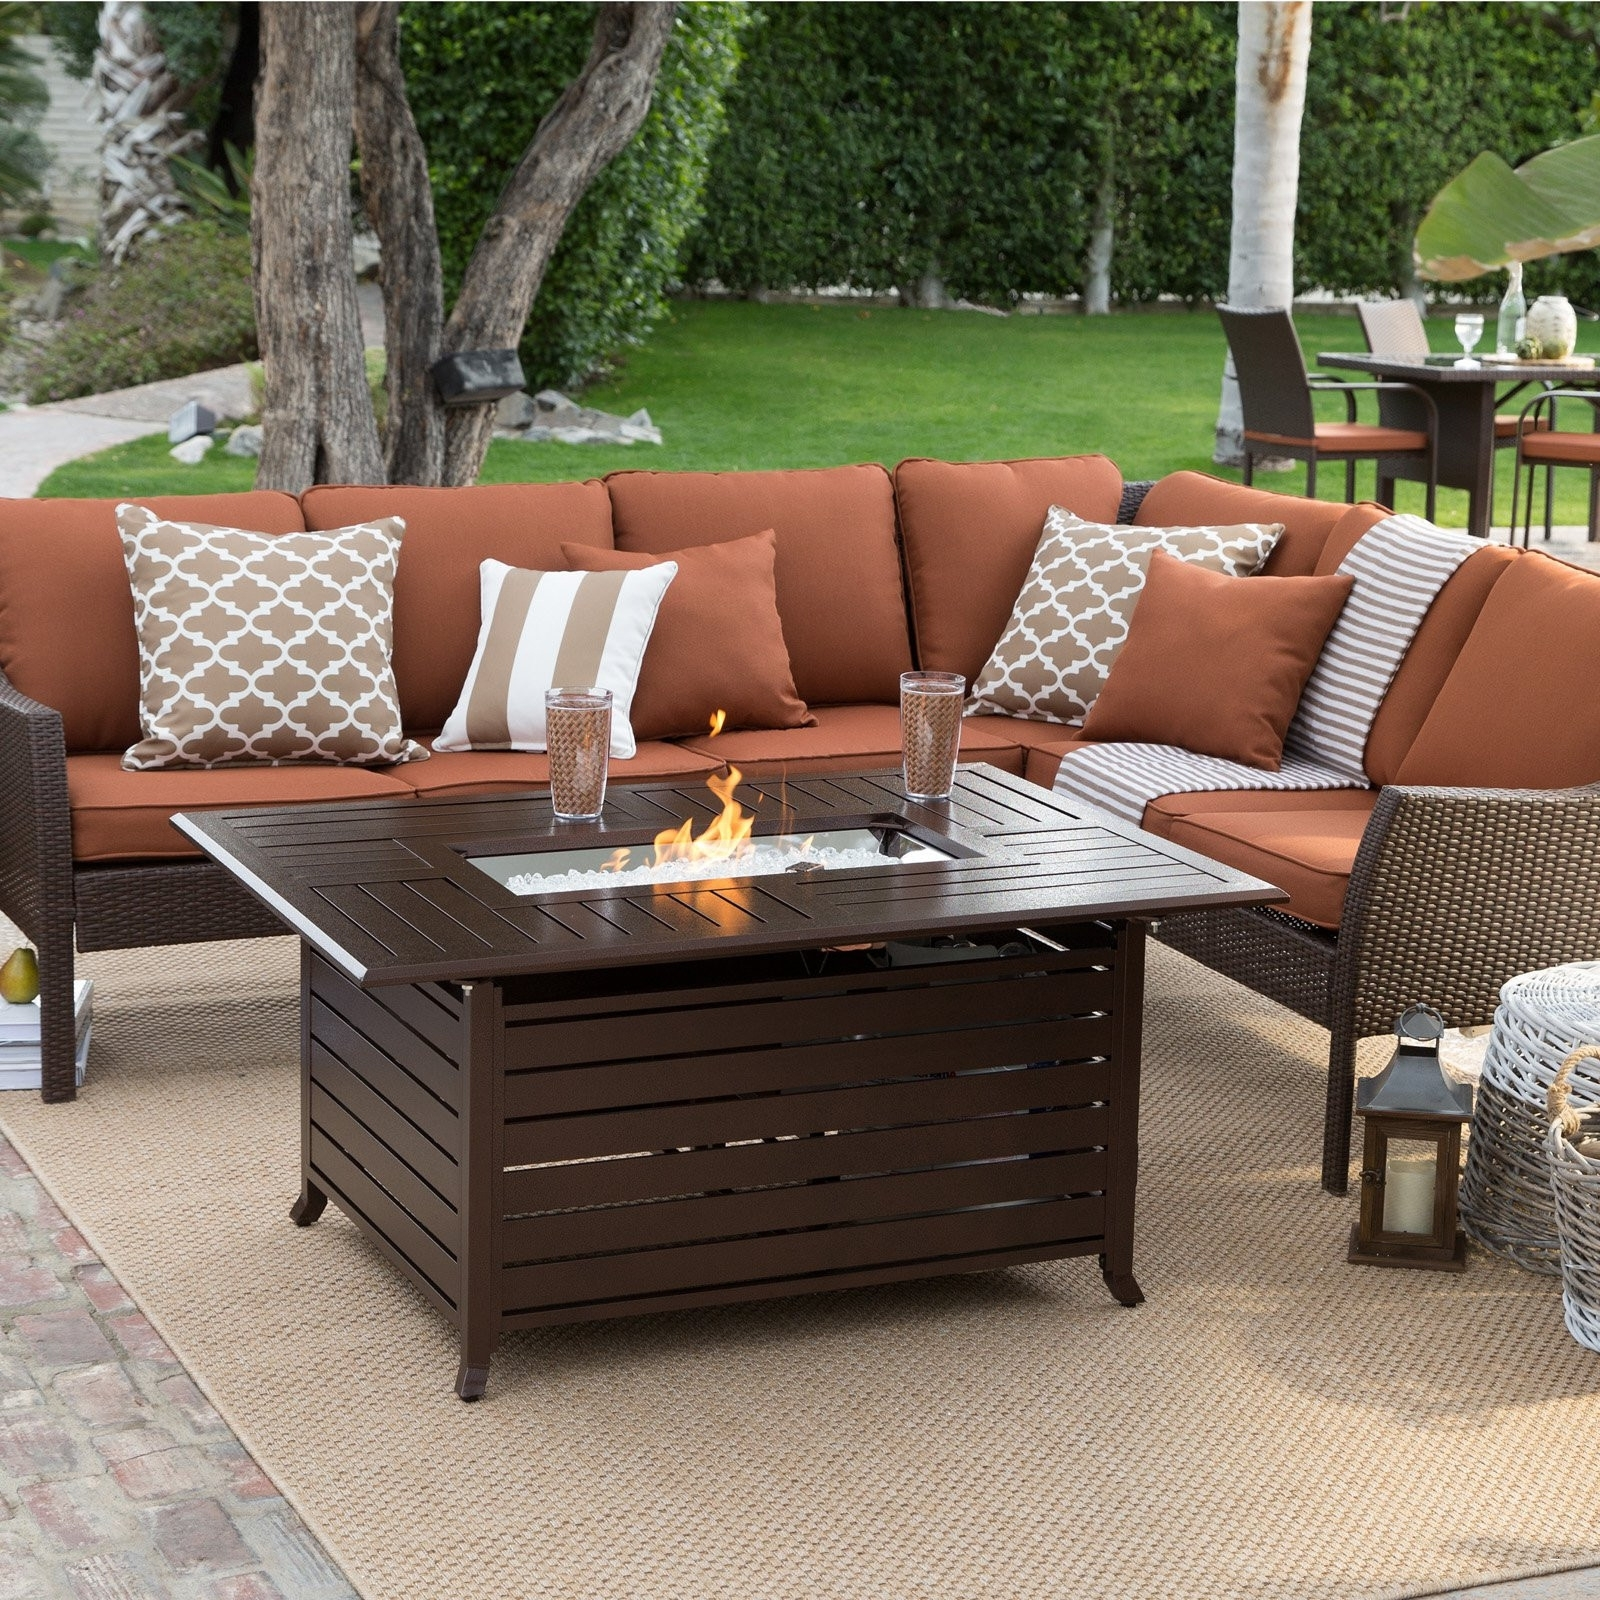 Patio Conversation Sets With Fire Pit In Most Popular Fireplace Tables Outdoor Unique Patio Conversation Sets With Fire (View 7 of 20)